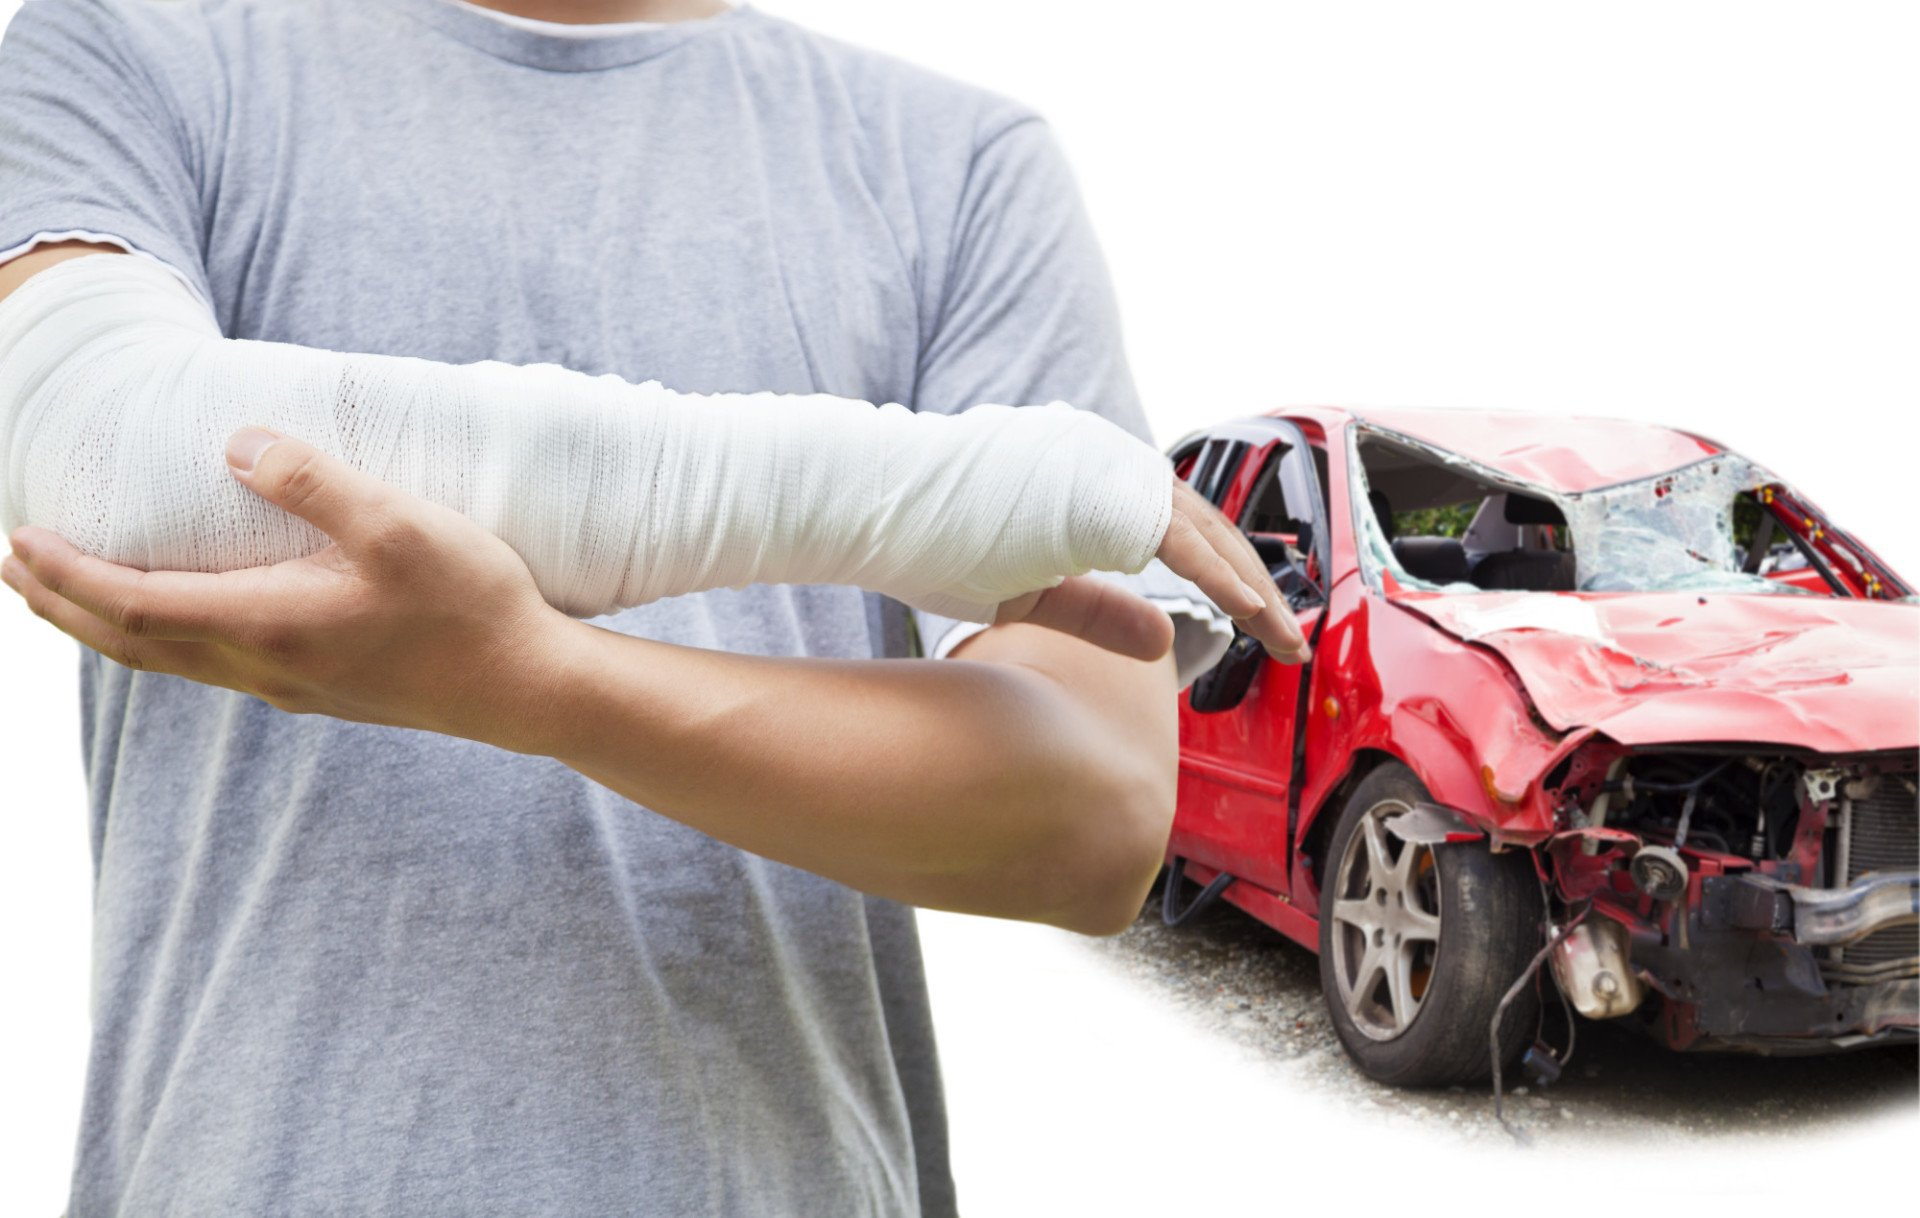 How Soon Should You See a Chiropractor After Car Accident ...